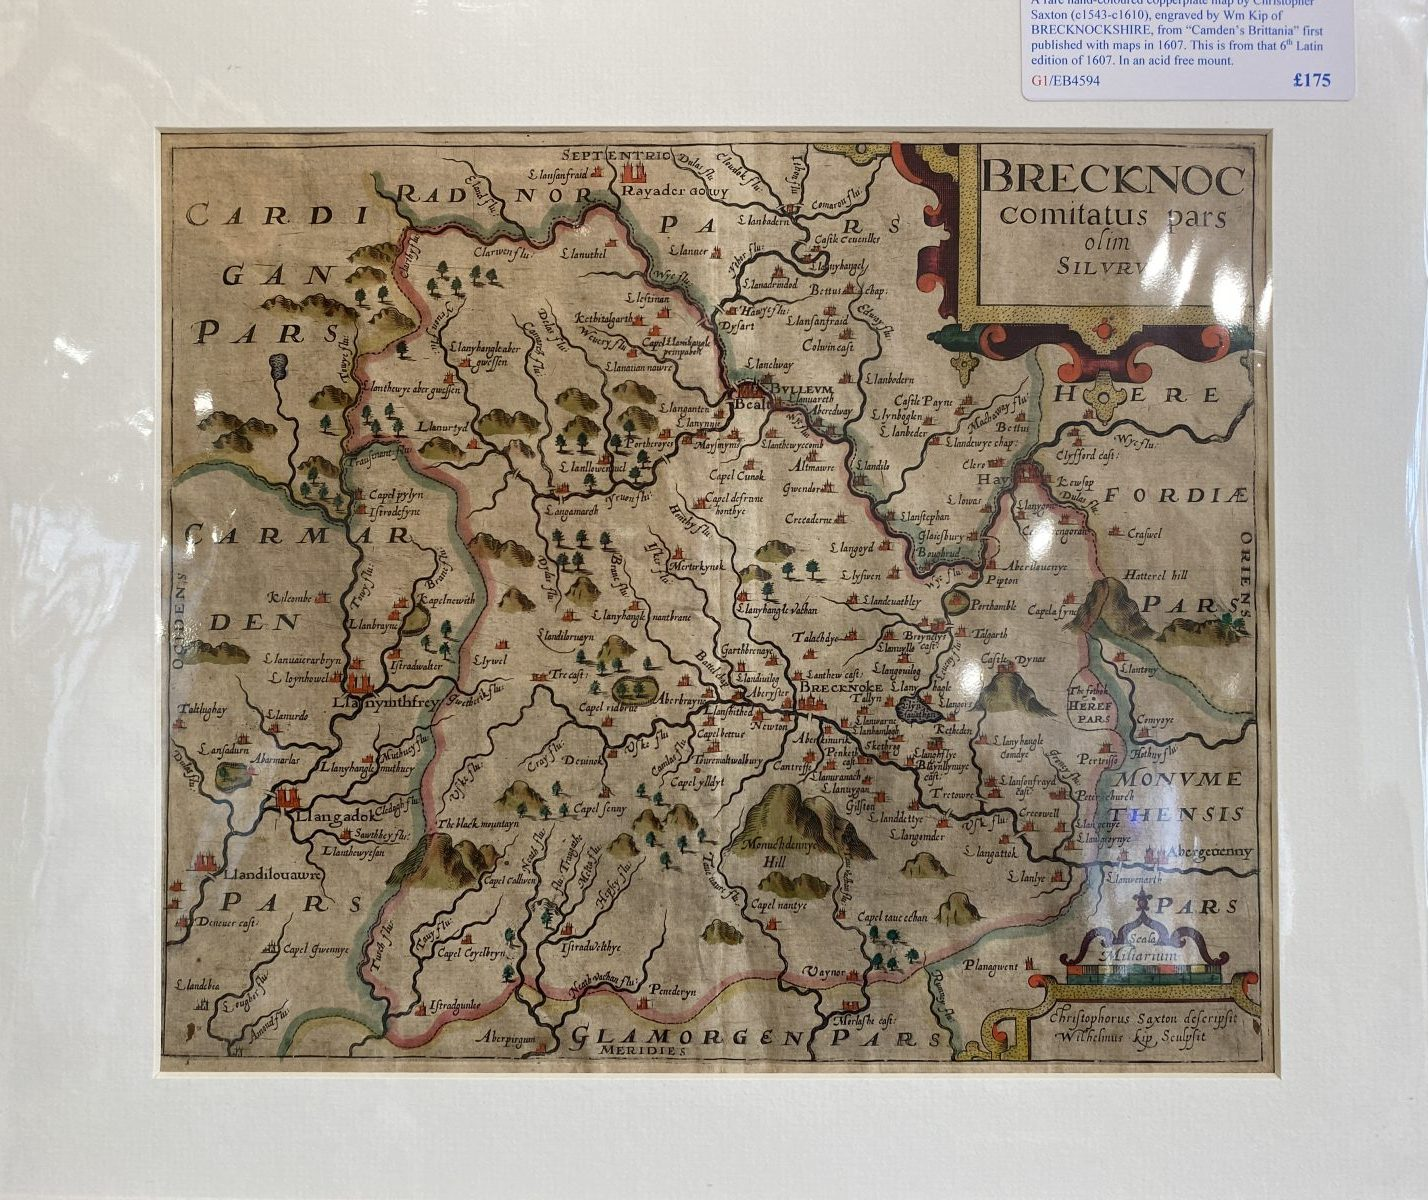 G1 - A rare early hand-coloured map of BRECKNOCKSHIRE by Christopher Saxton (1543-1610) & William Kip, from Camdens Britannia of 1607. In a new acid free mount ready for framing.  £175